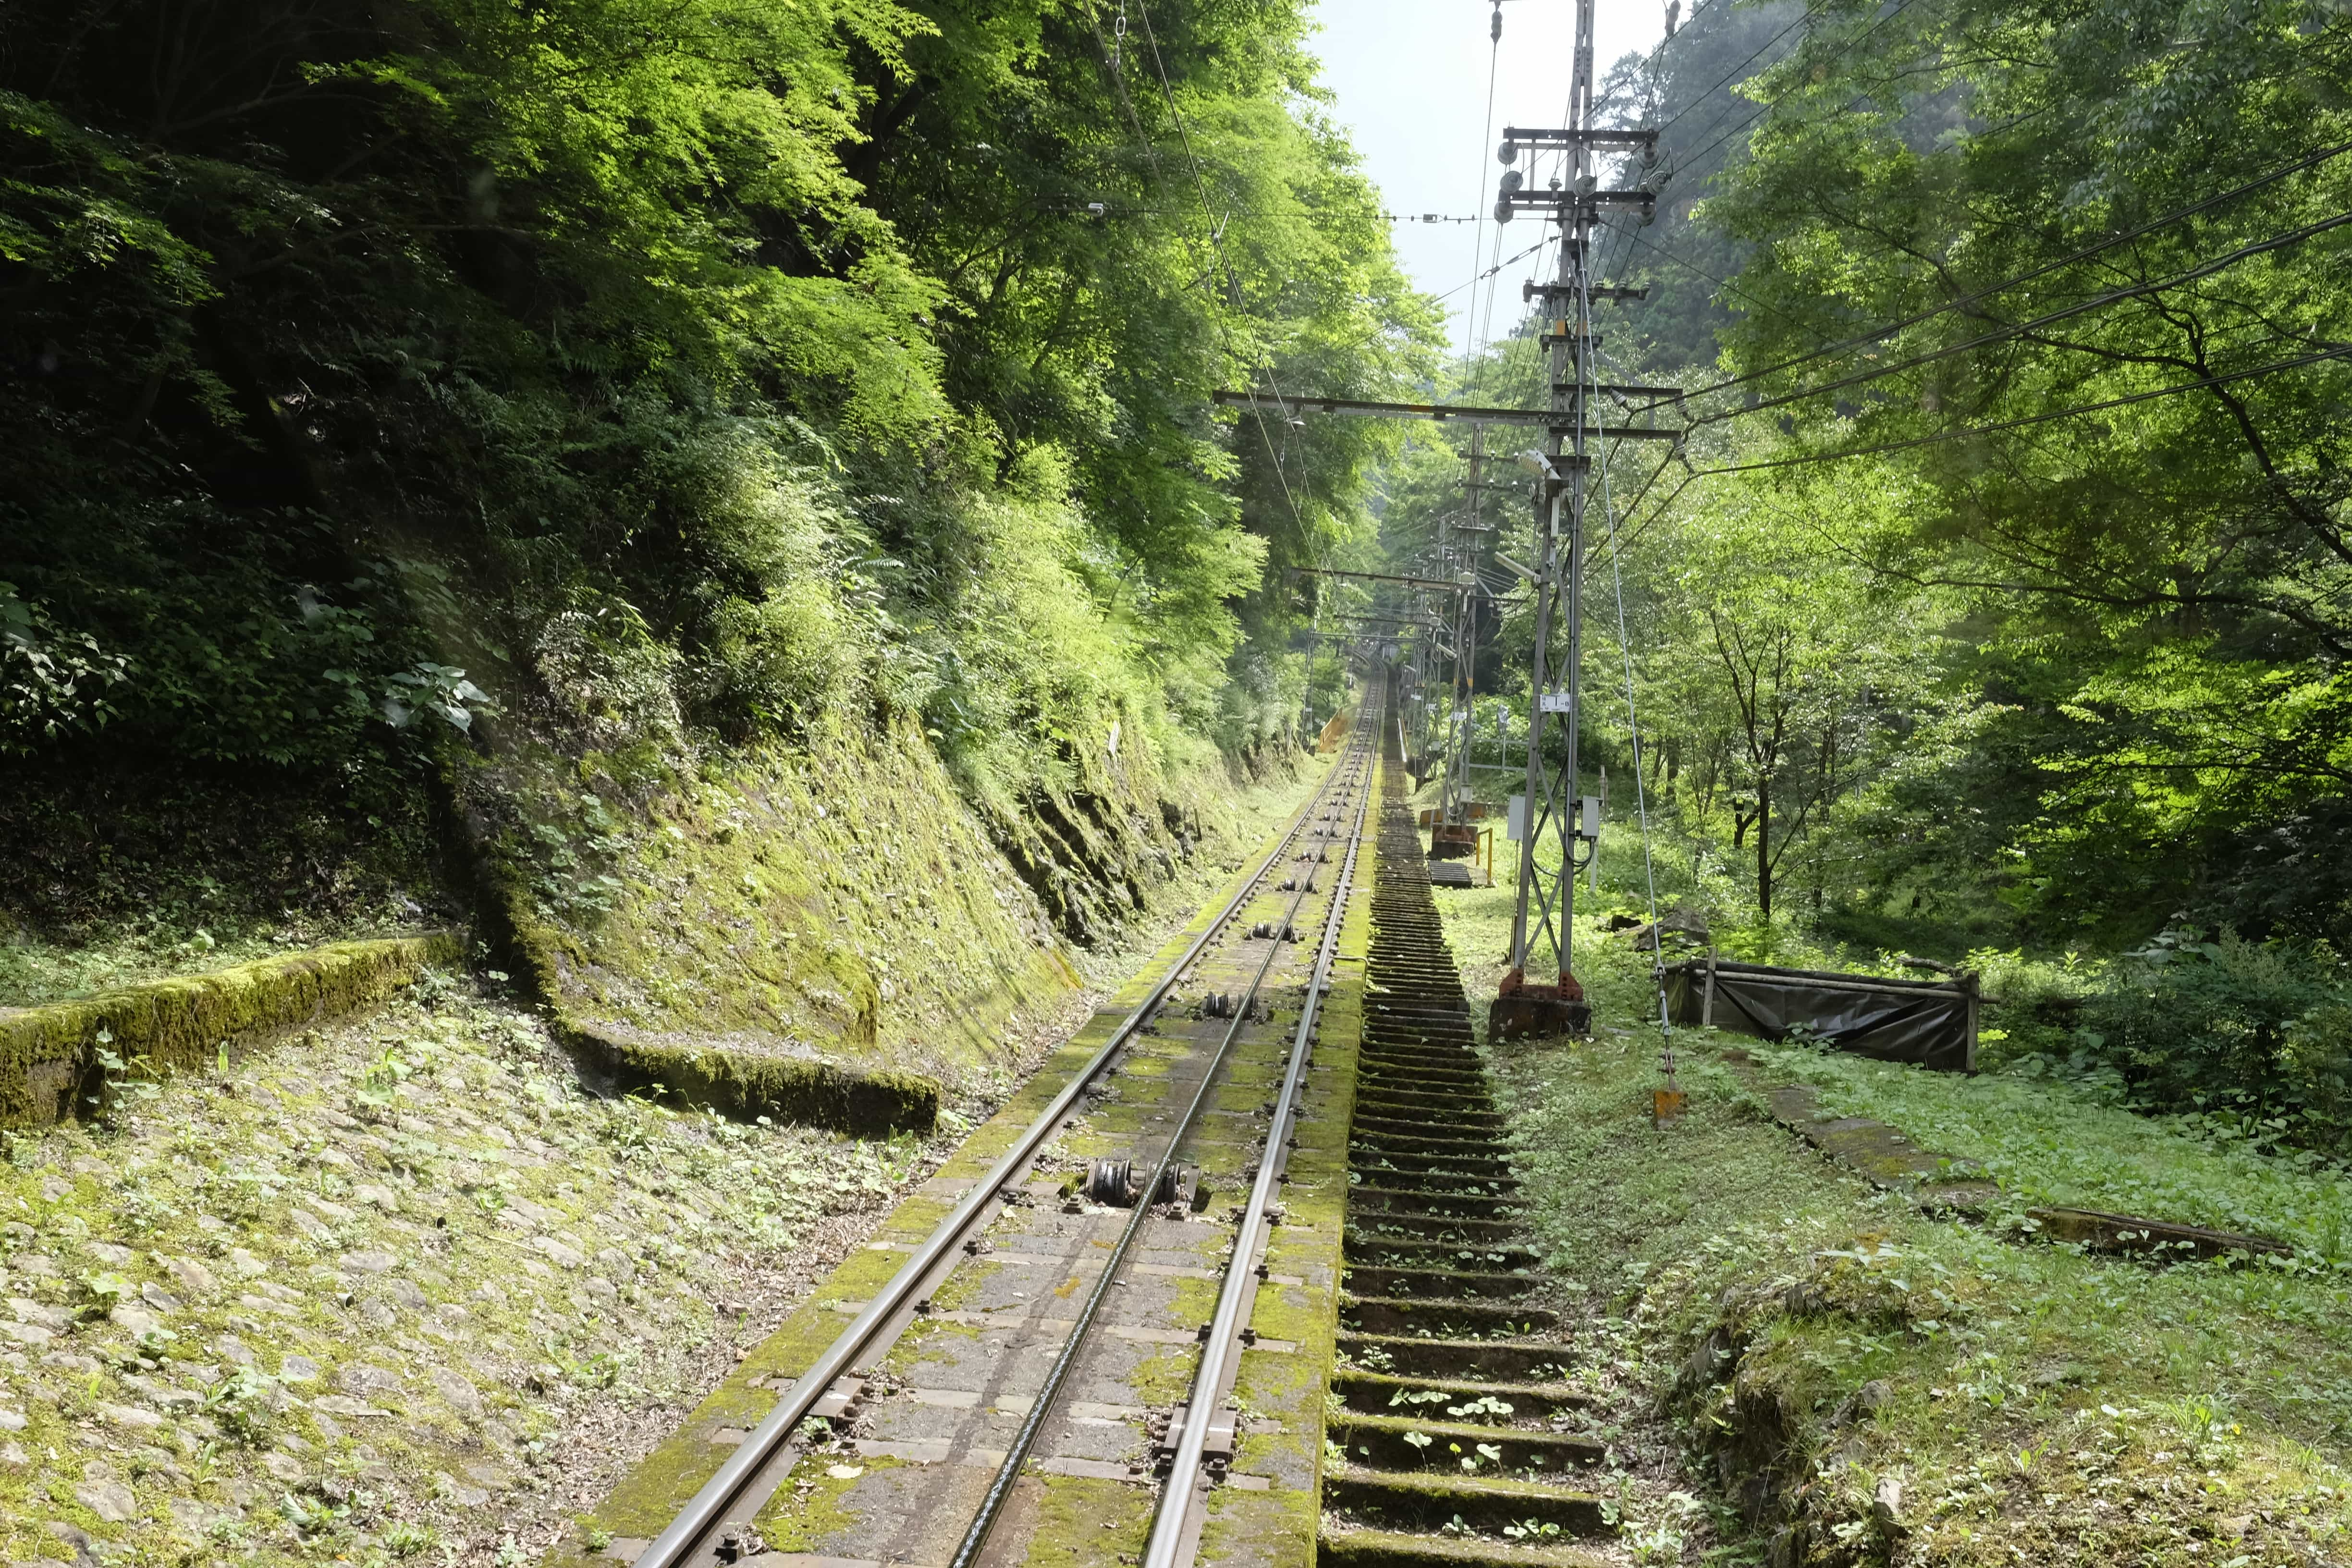 Koya-san cable car